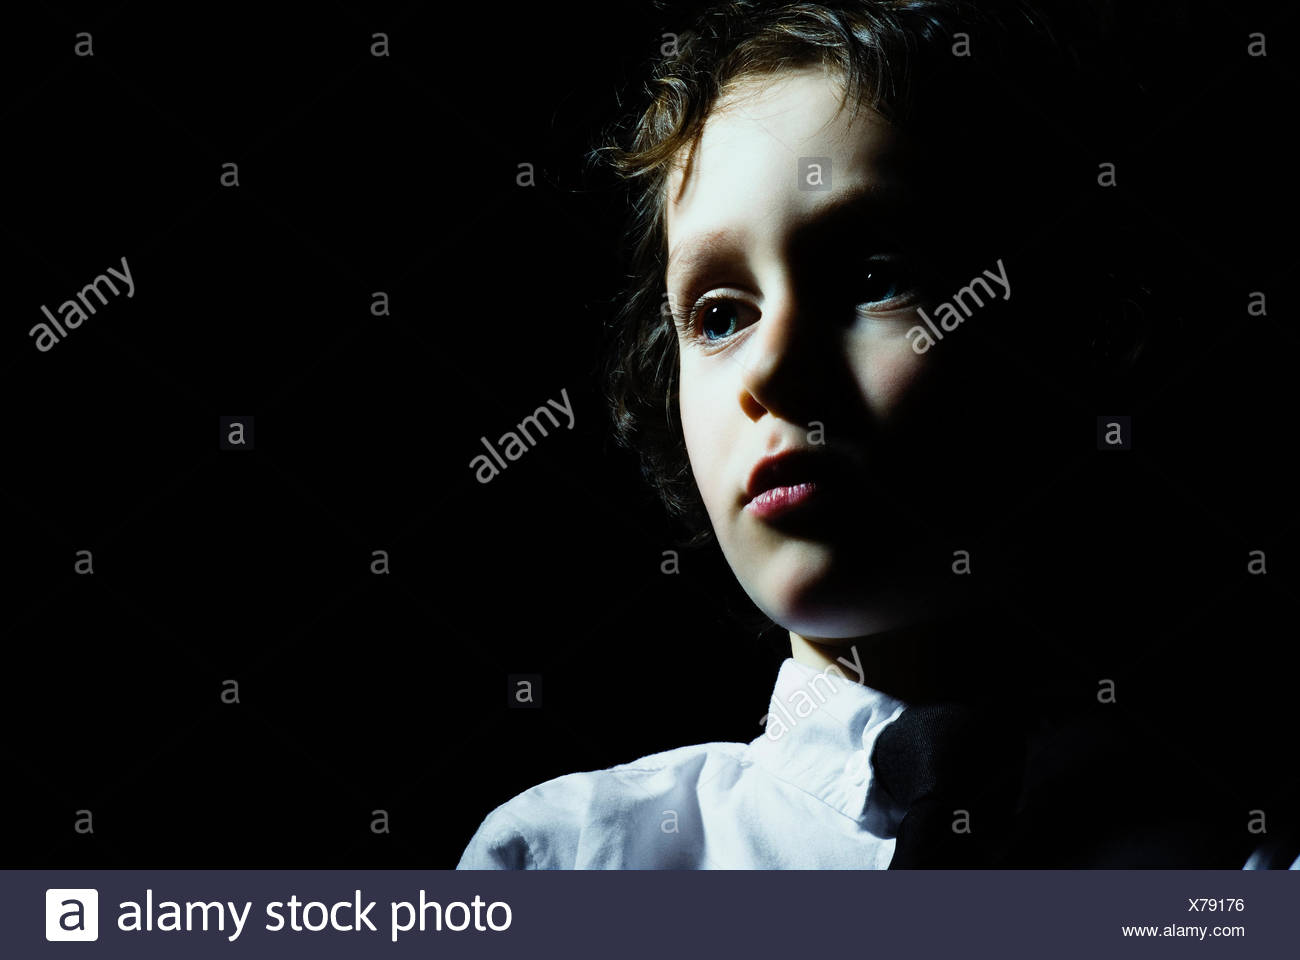 A young boy looking away in contemplation - Stock Image